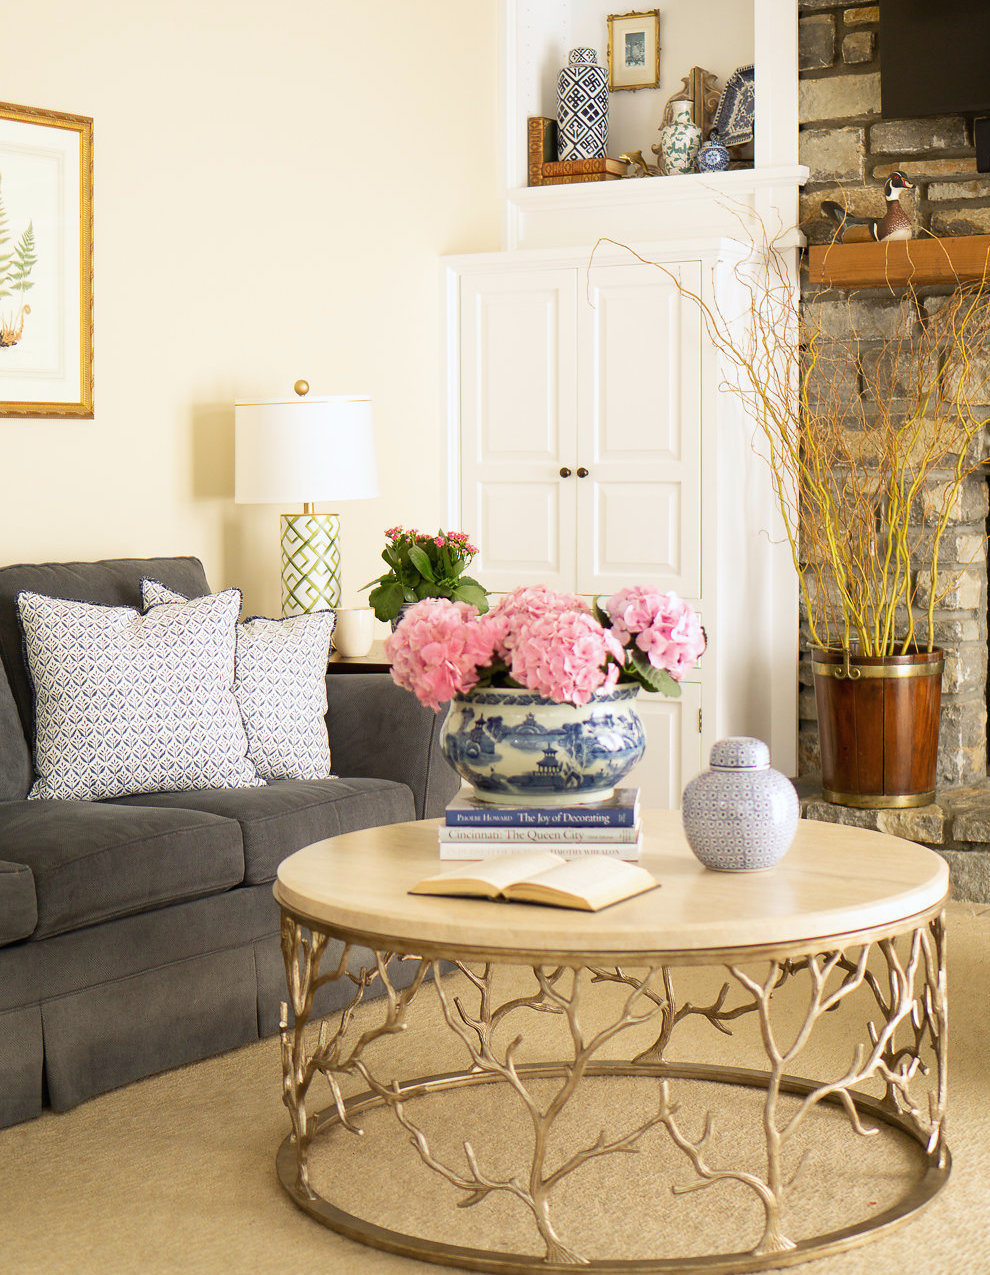 Living room with sofa, round center table and flower